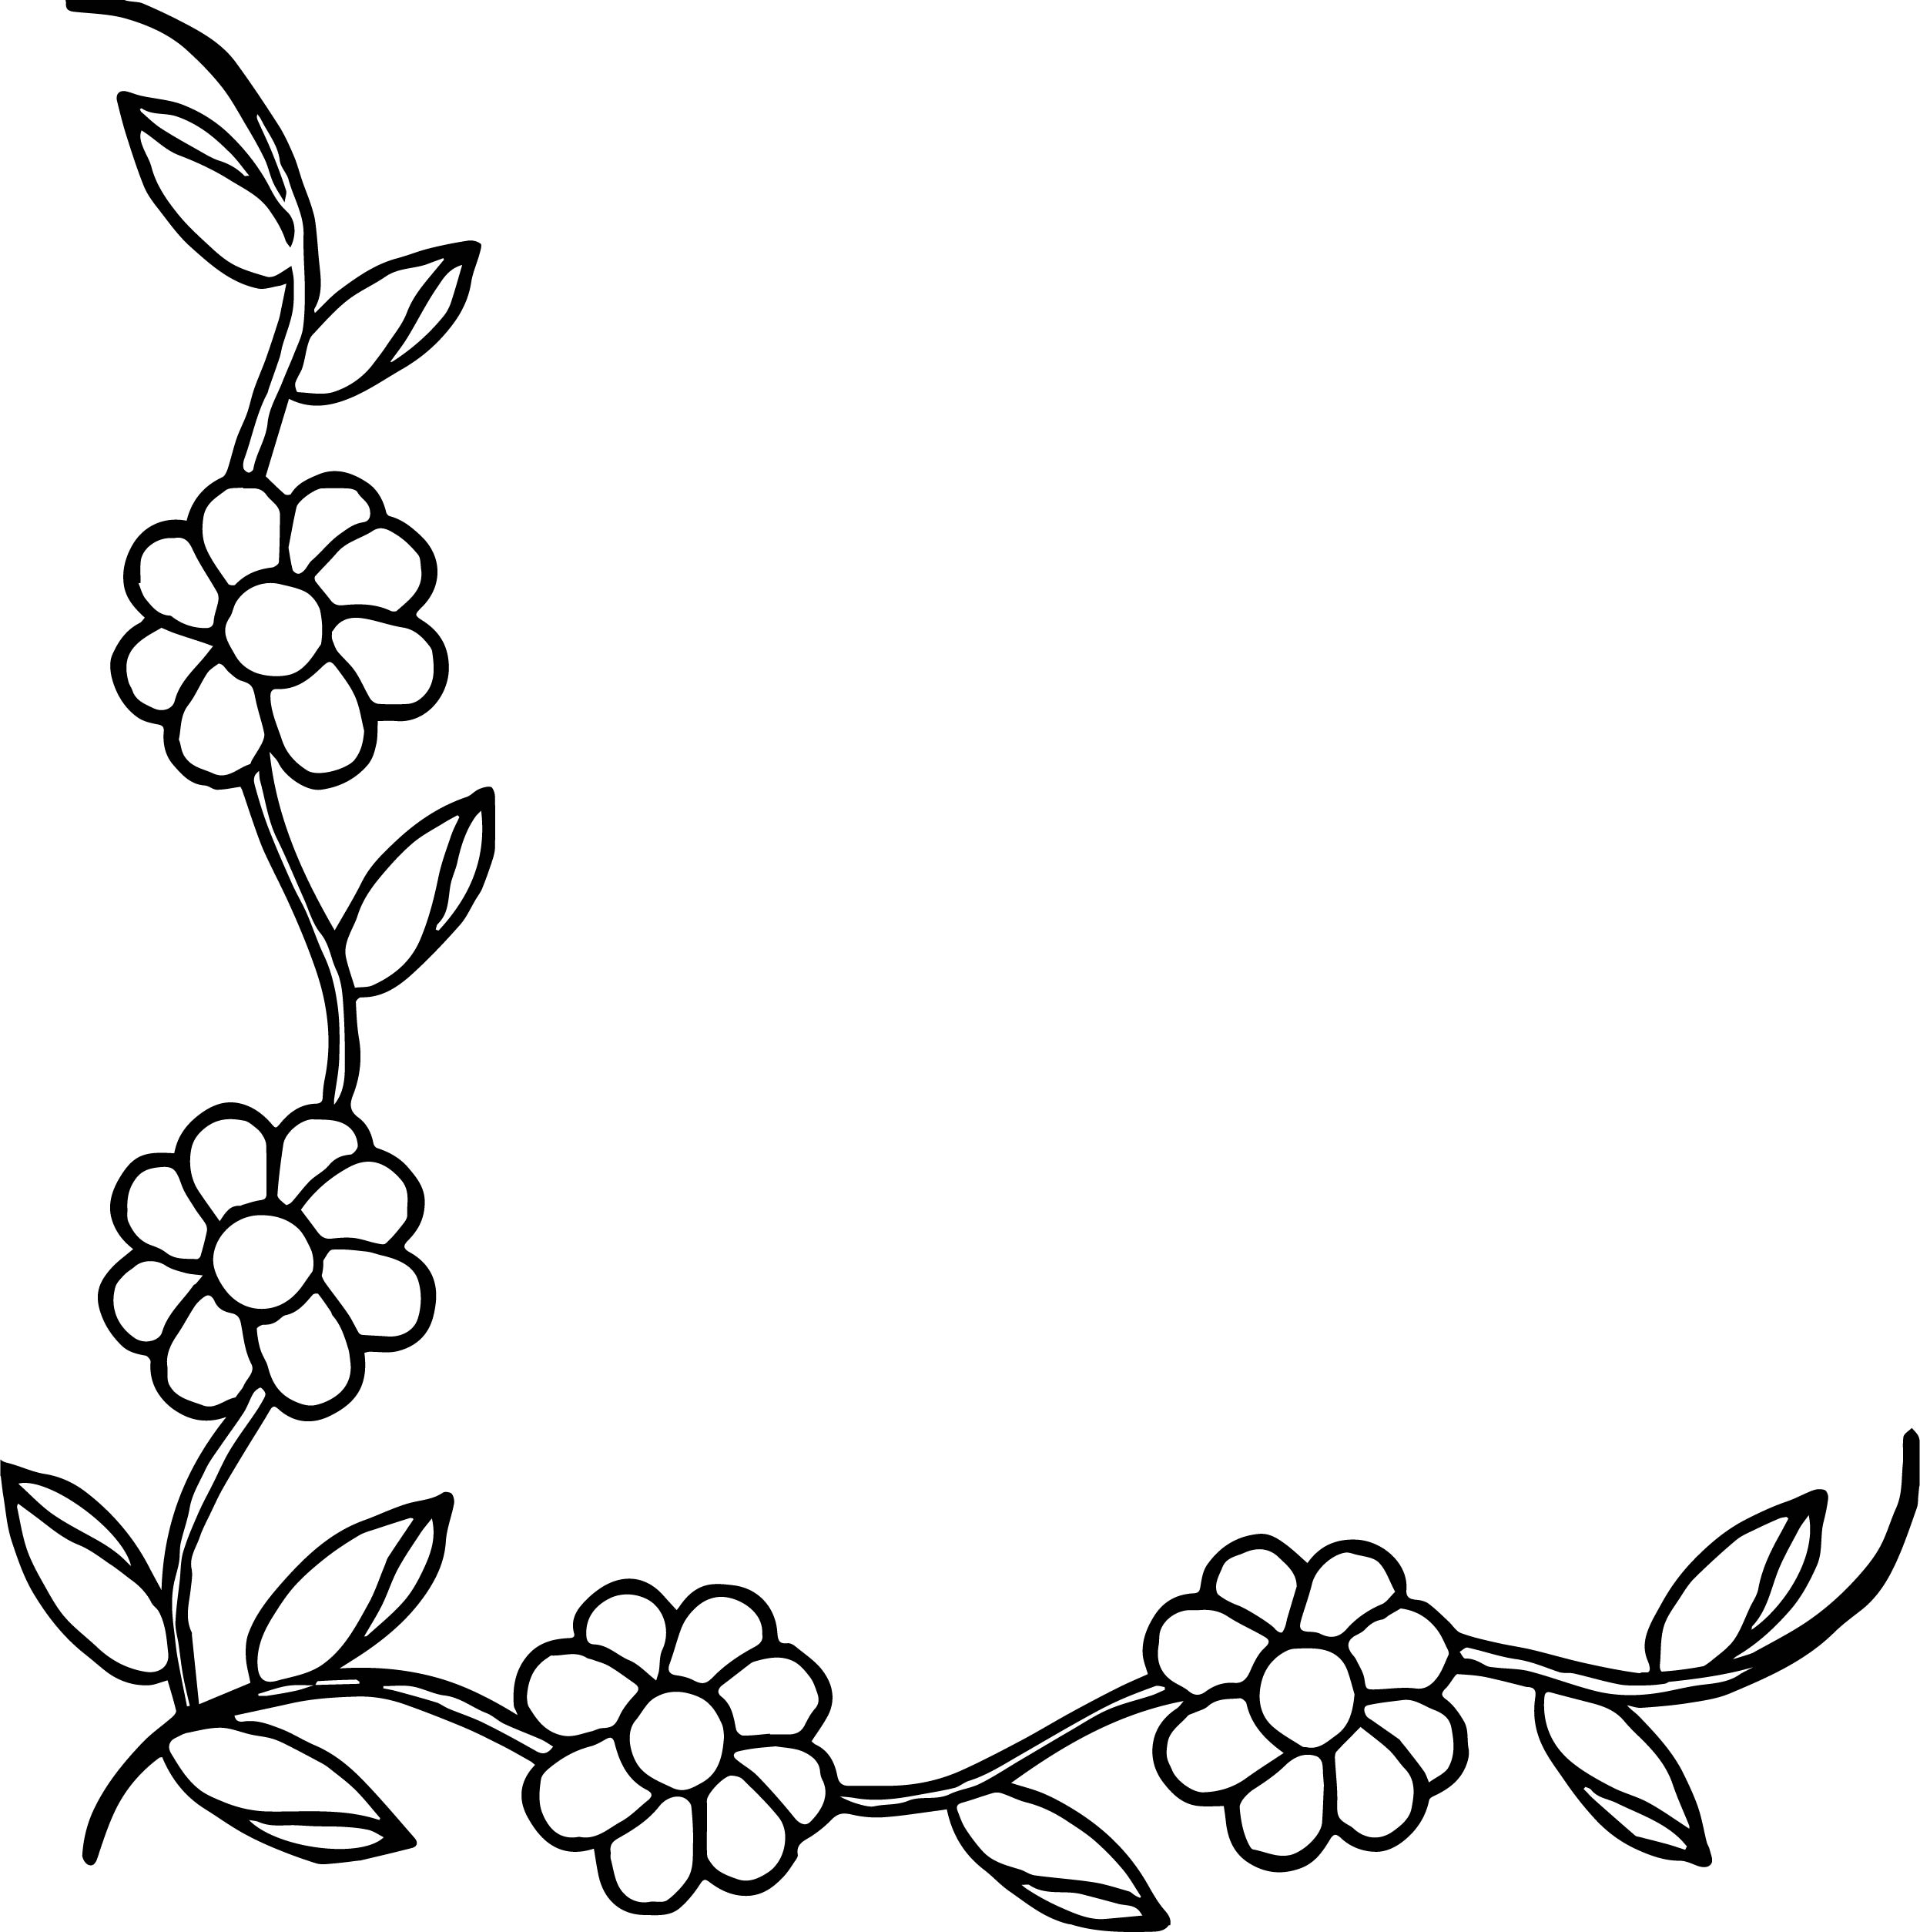 Printable Holly Leaf Border Clip Art